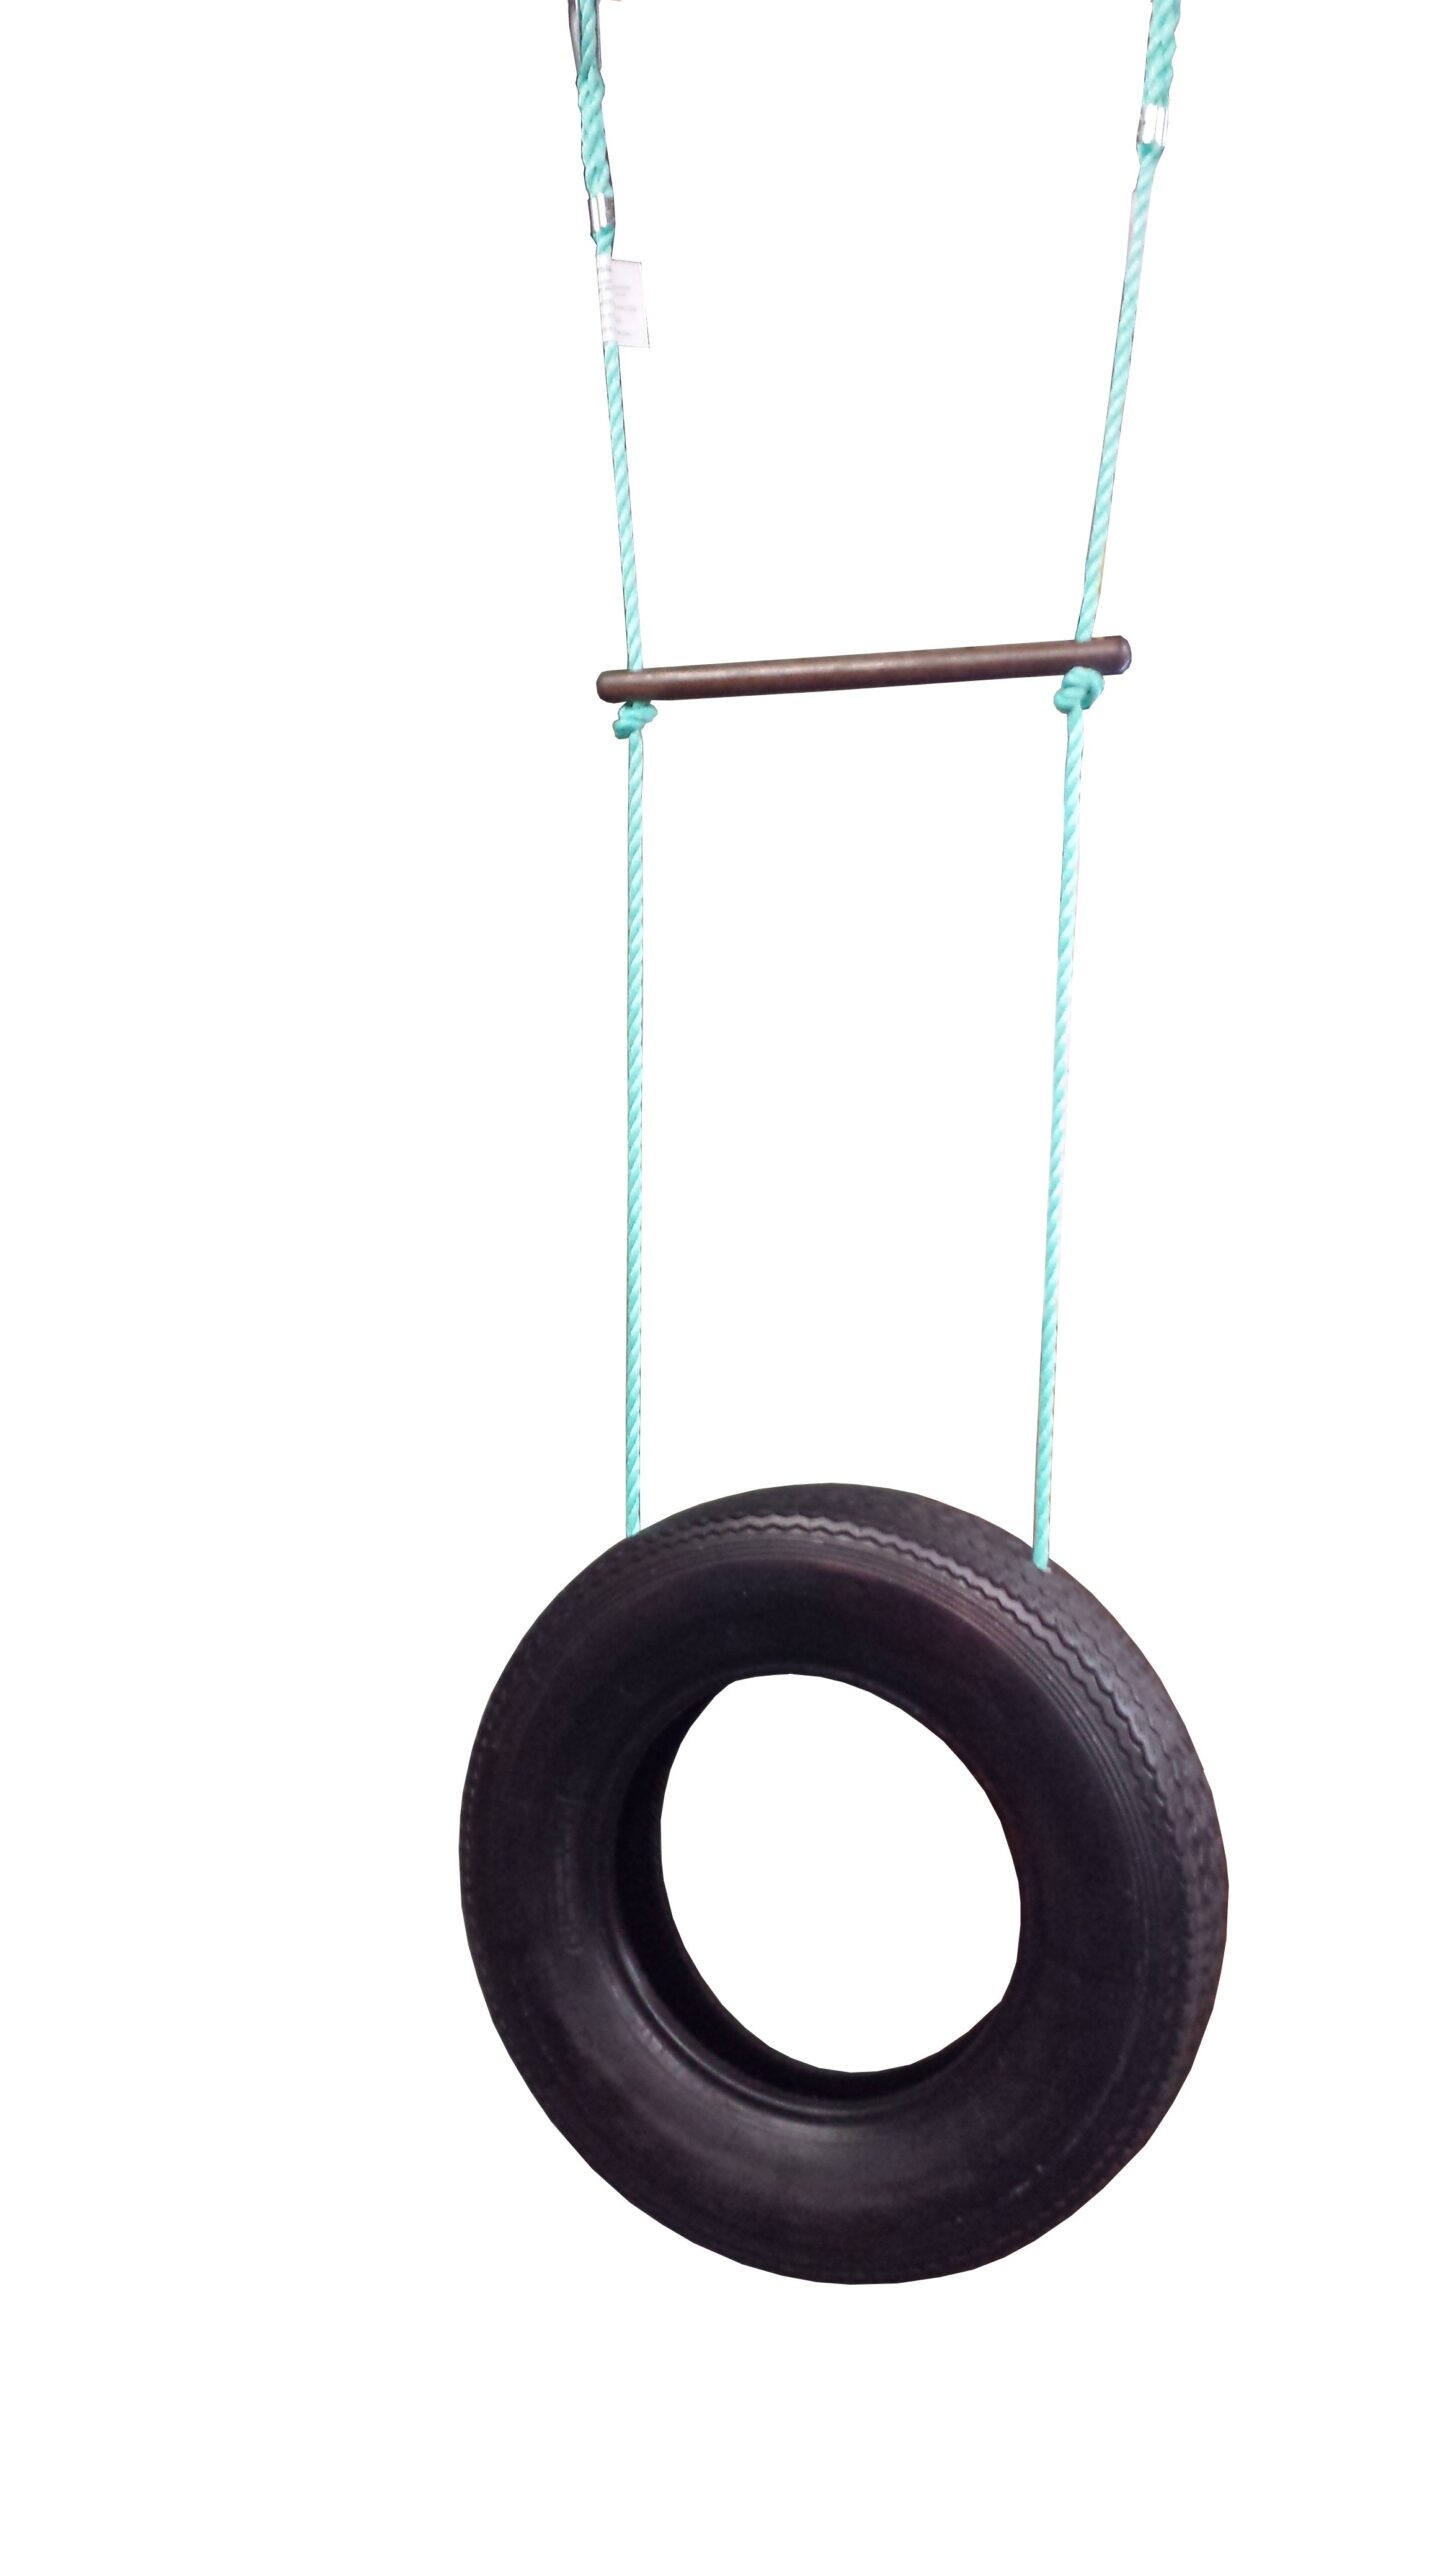 vertical tyre & trapeze